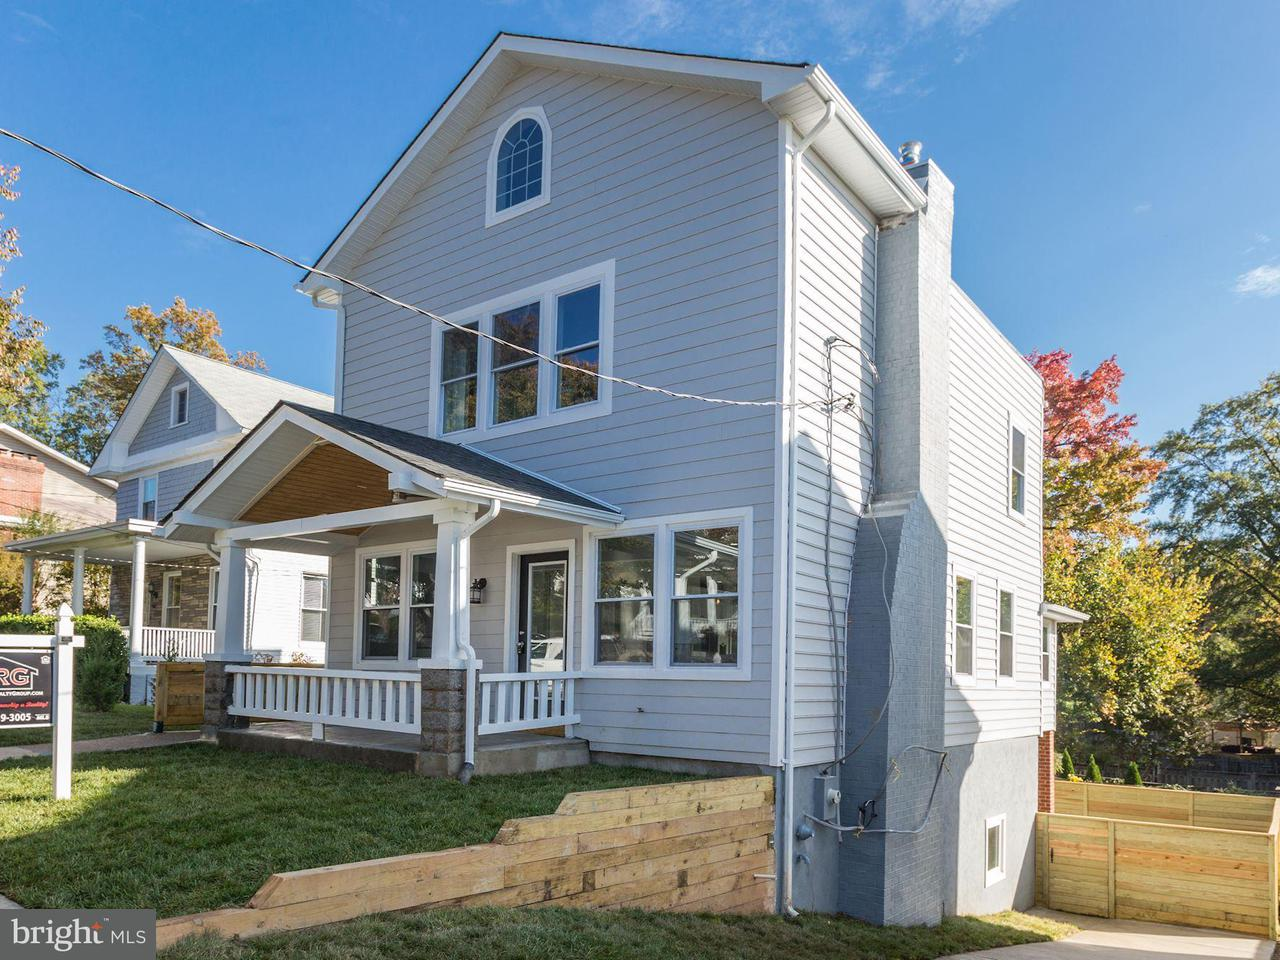 Single Family Home for Sale at 3005 26TH ST NE 3005 26TH ST NE Washington, District Of Columbia 20018 United States